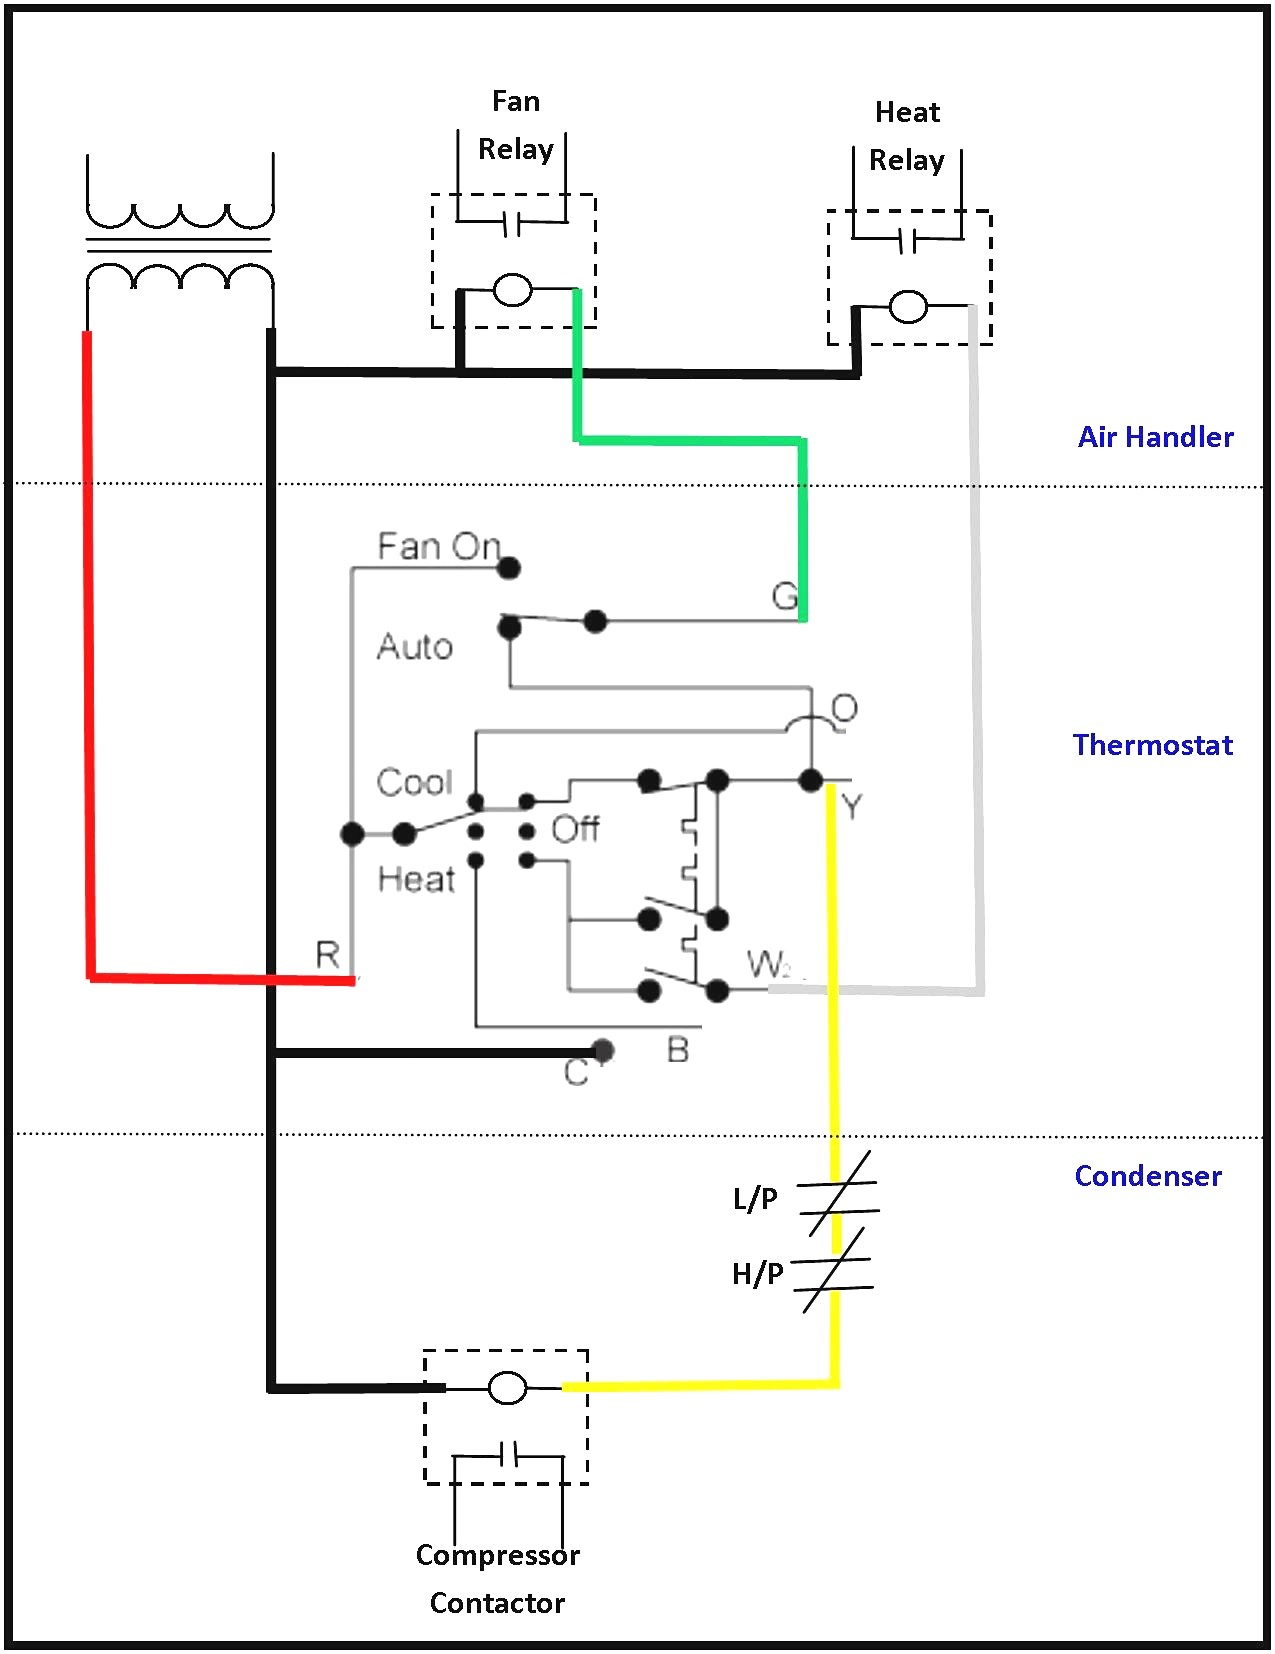 Carrier thermostat Wiring Diagram Air Conditioning thermostat Wiring Diagram with Airconditioning at Of Carrier thermostat Wiring Diagram